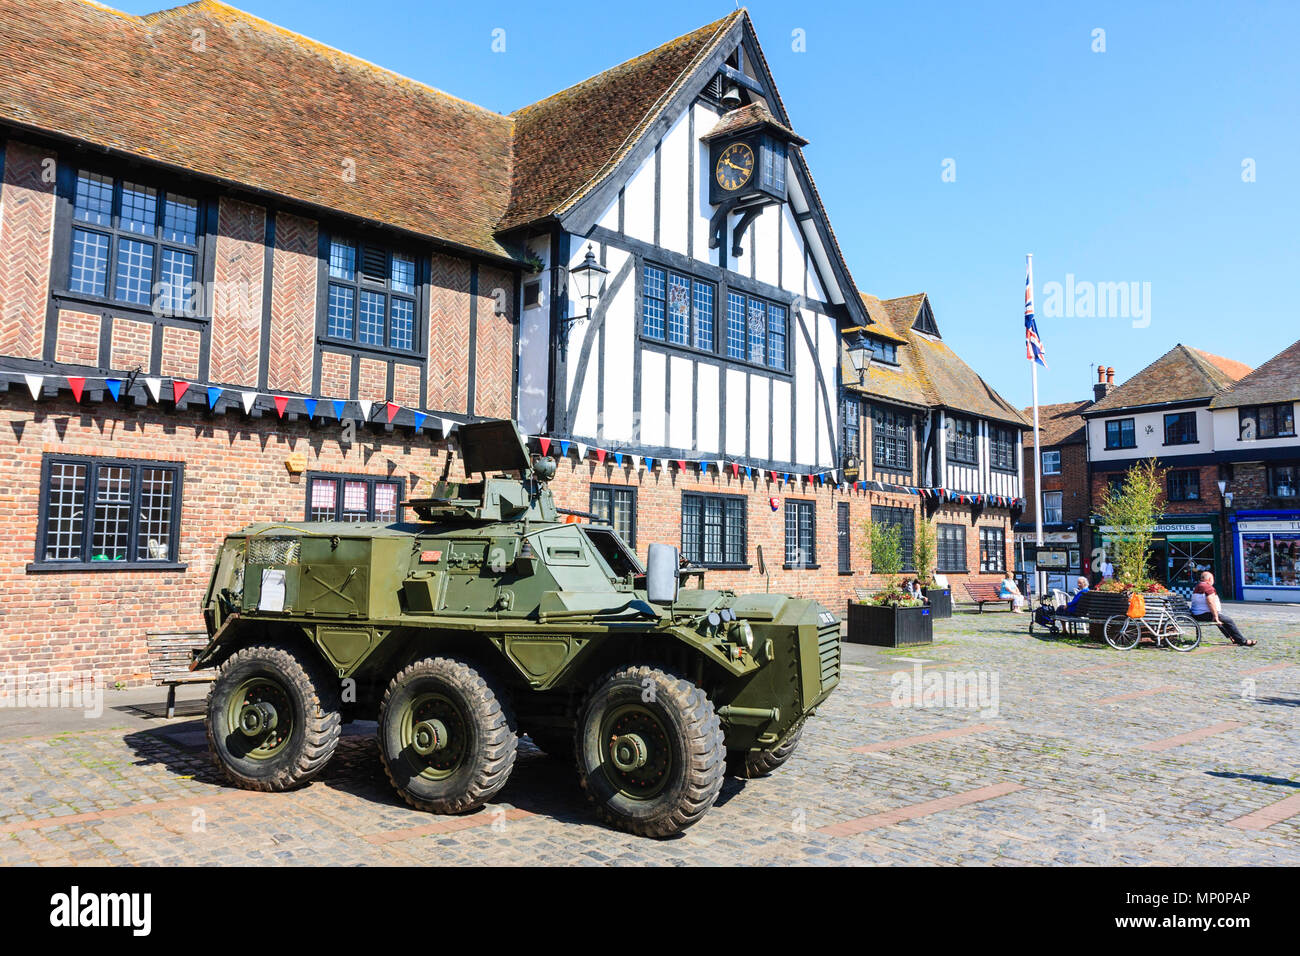 Saracen FV603 Alvis British armoured Personnel carrier parked outside the 14th century Sandwich guildhall. Daytime. - Stock Image